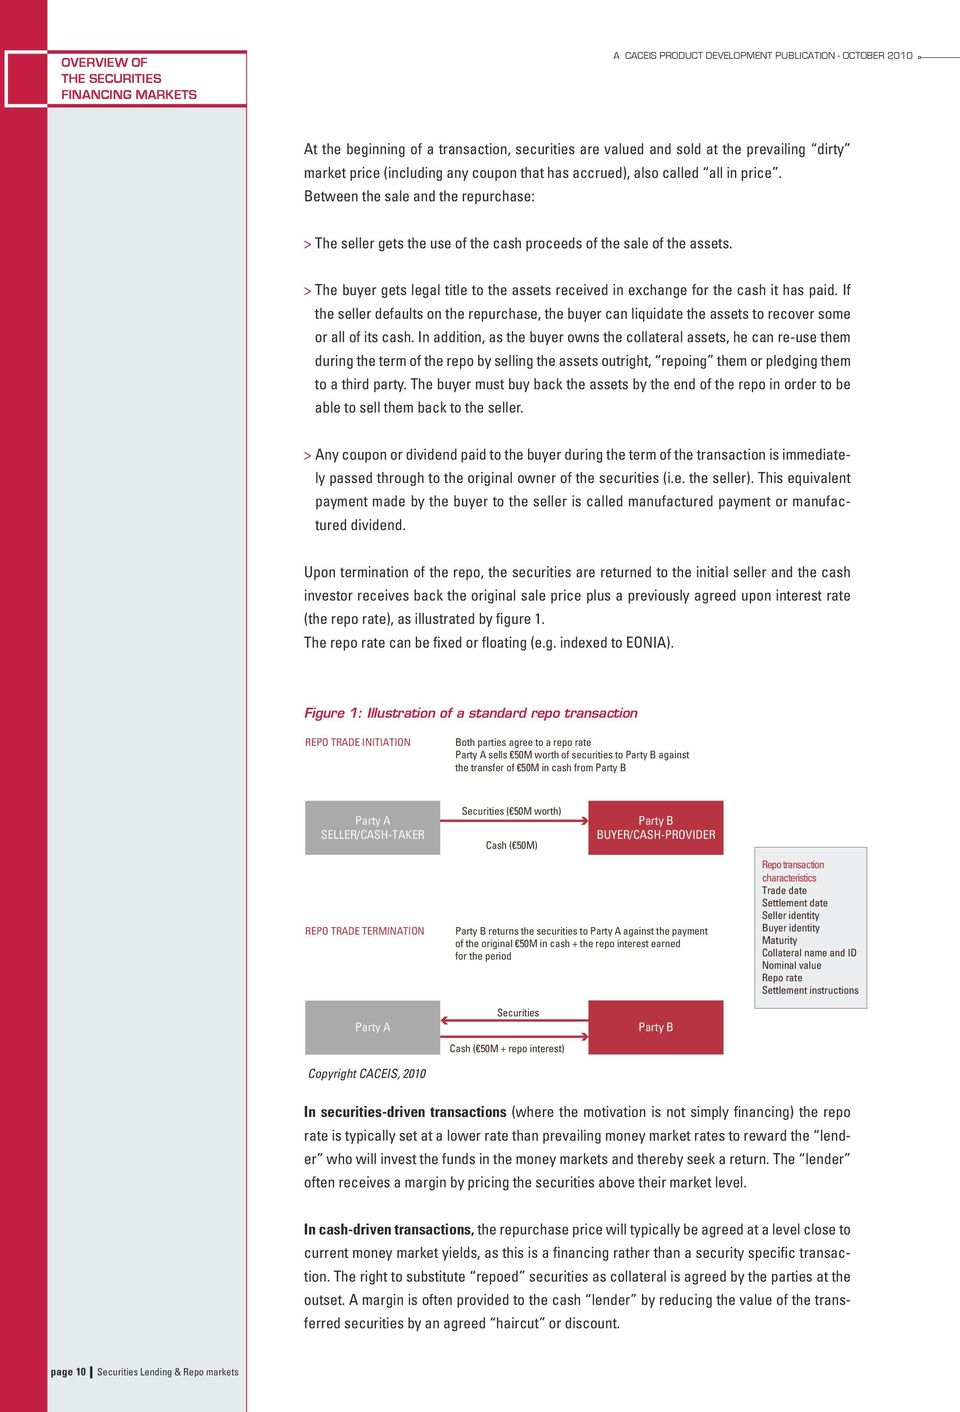 Securities Lending & Repo markets - PDF